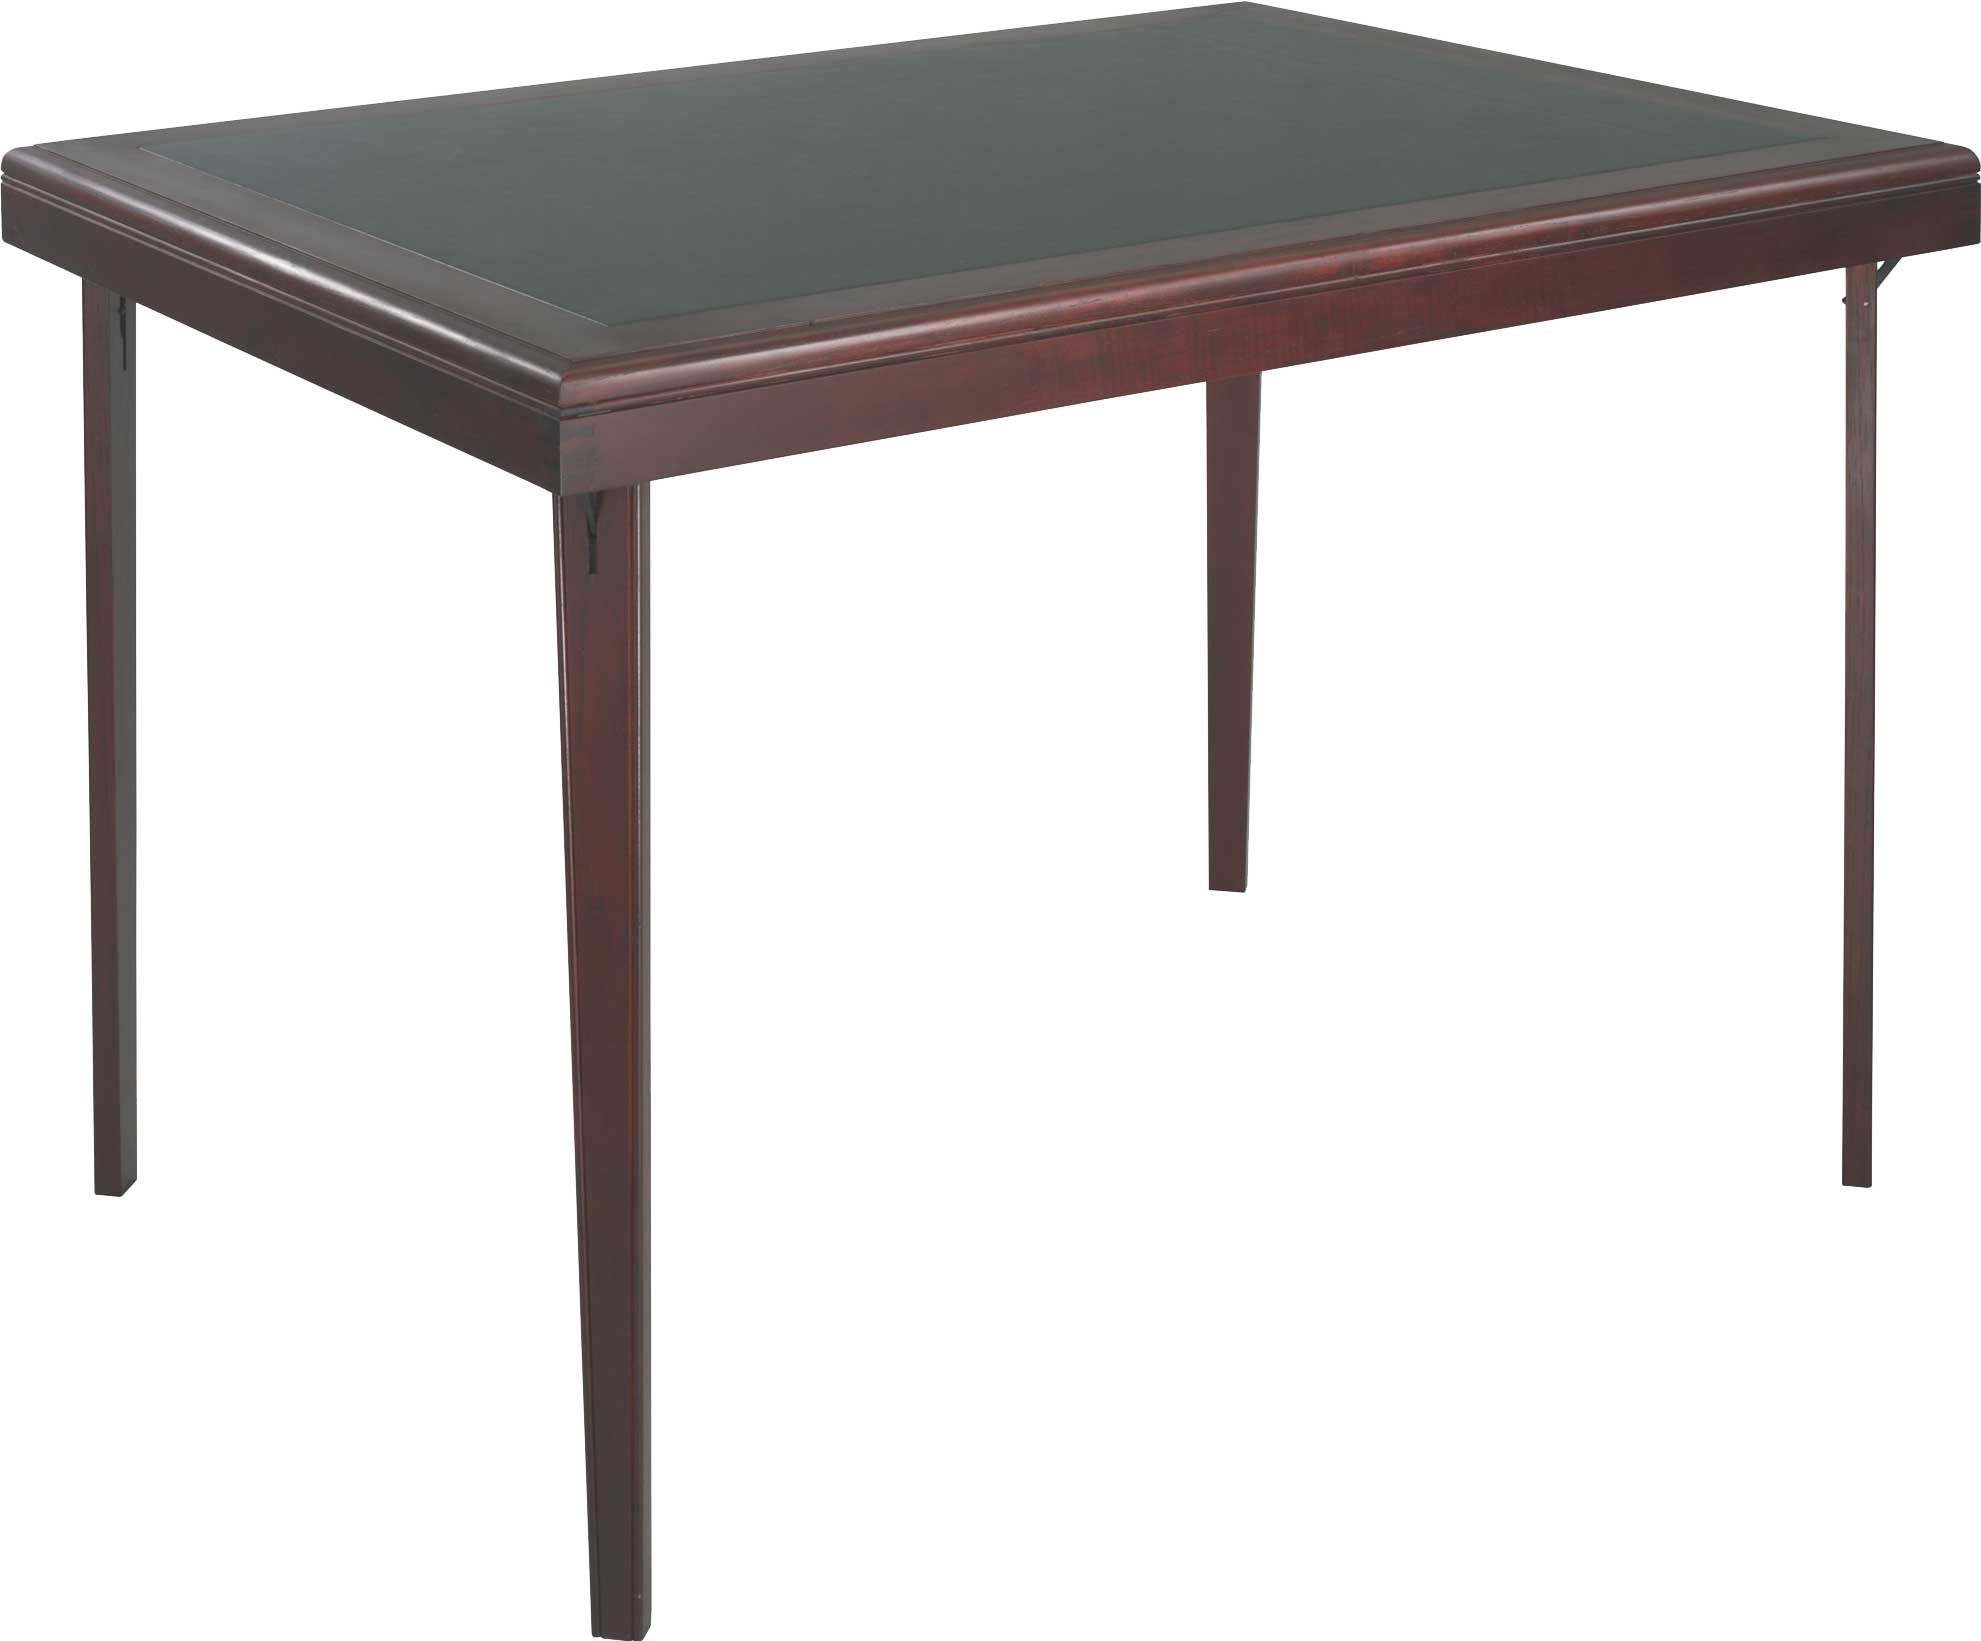 Folding Wood Tables Benefits